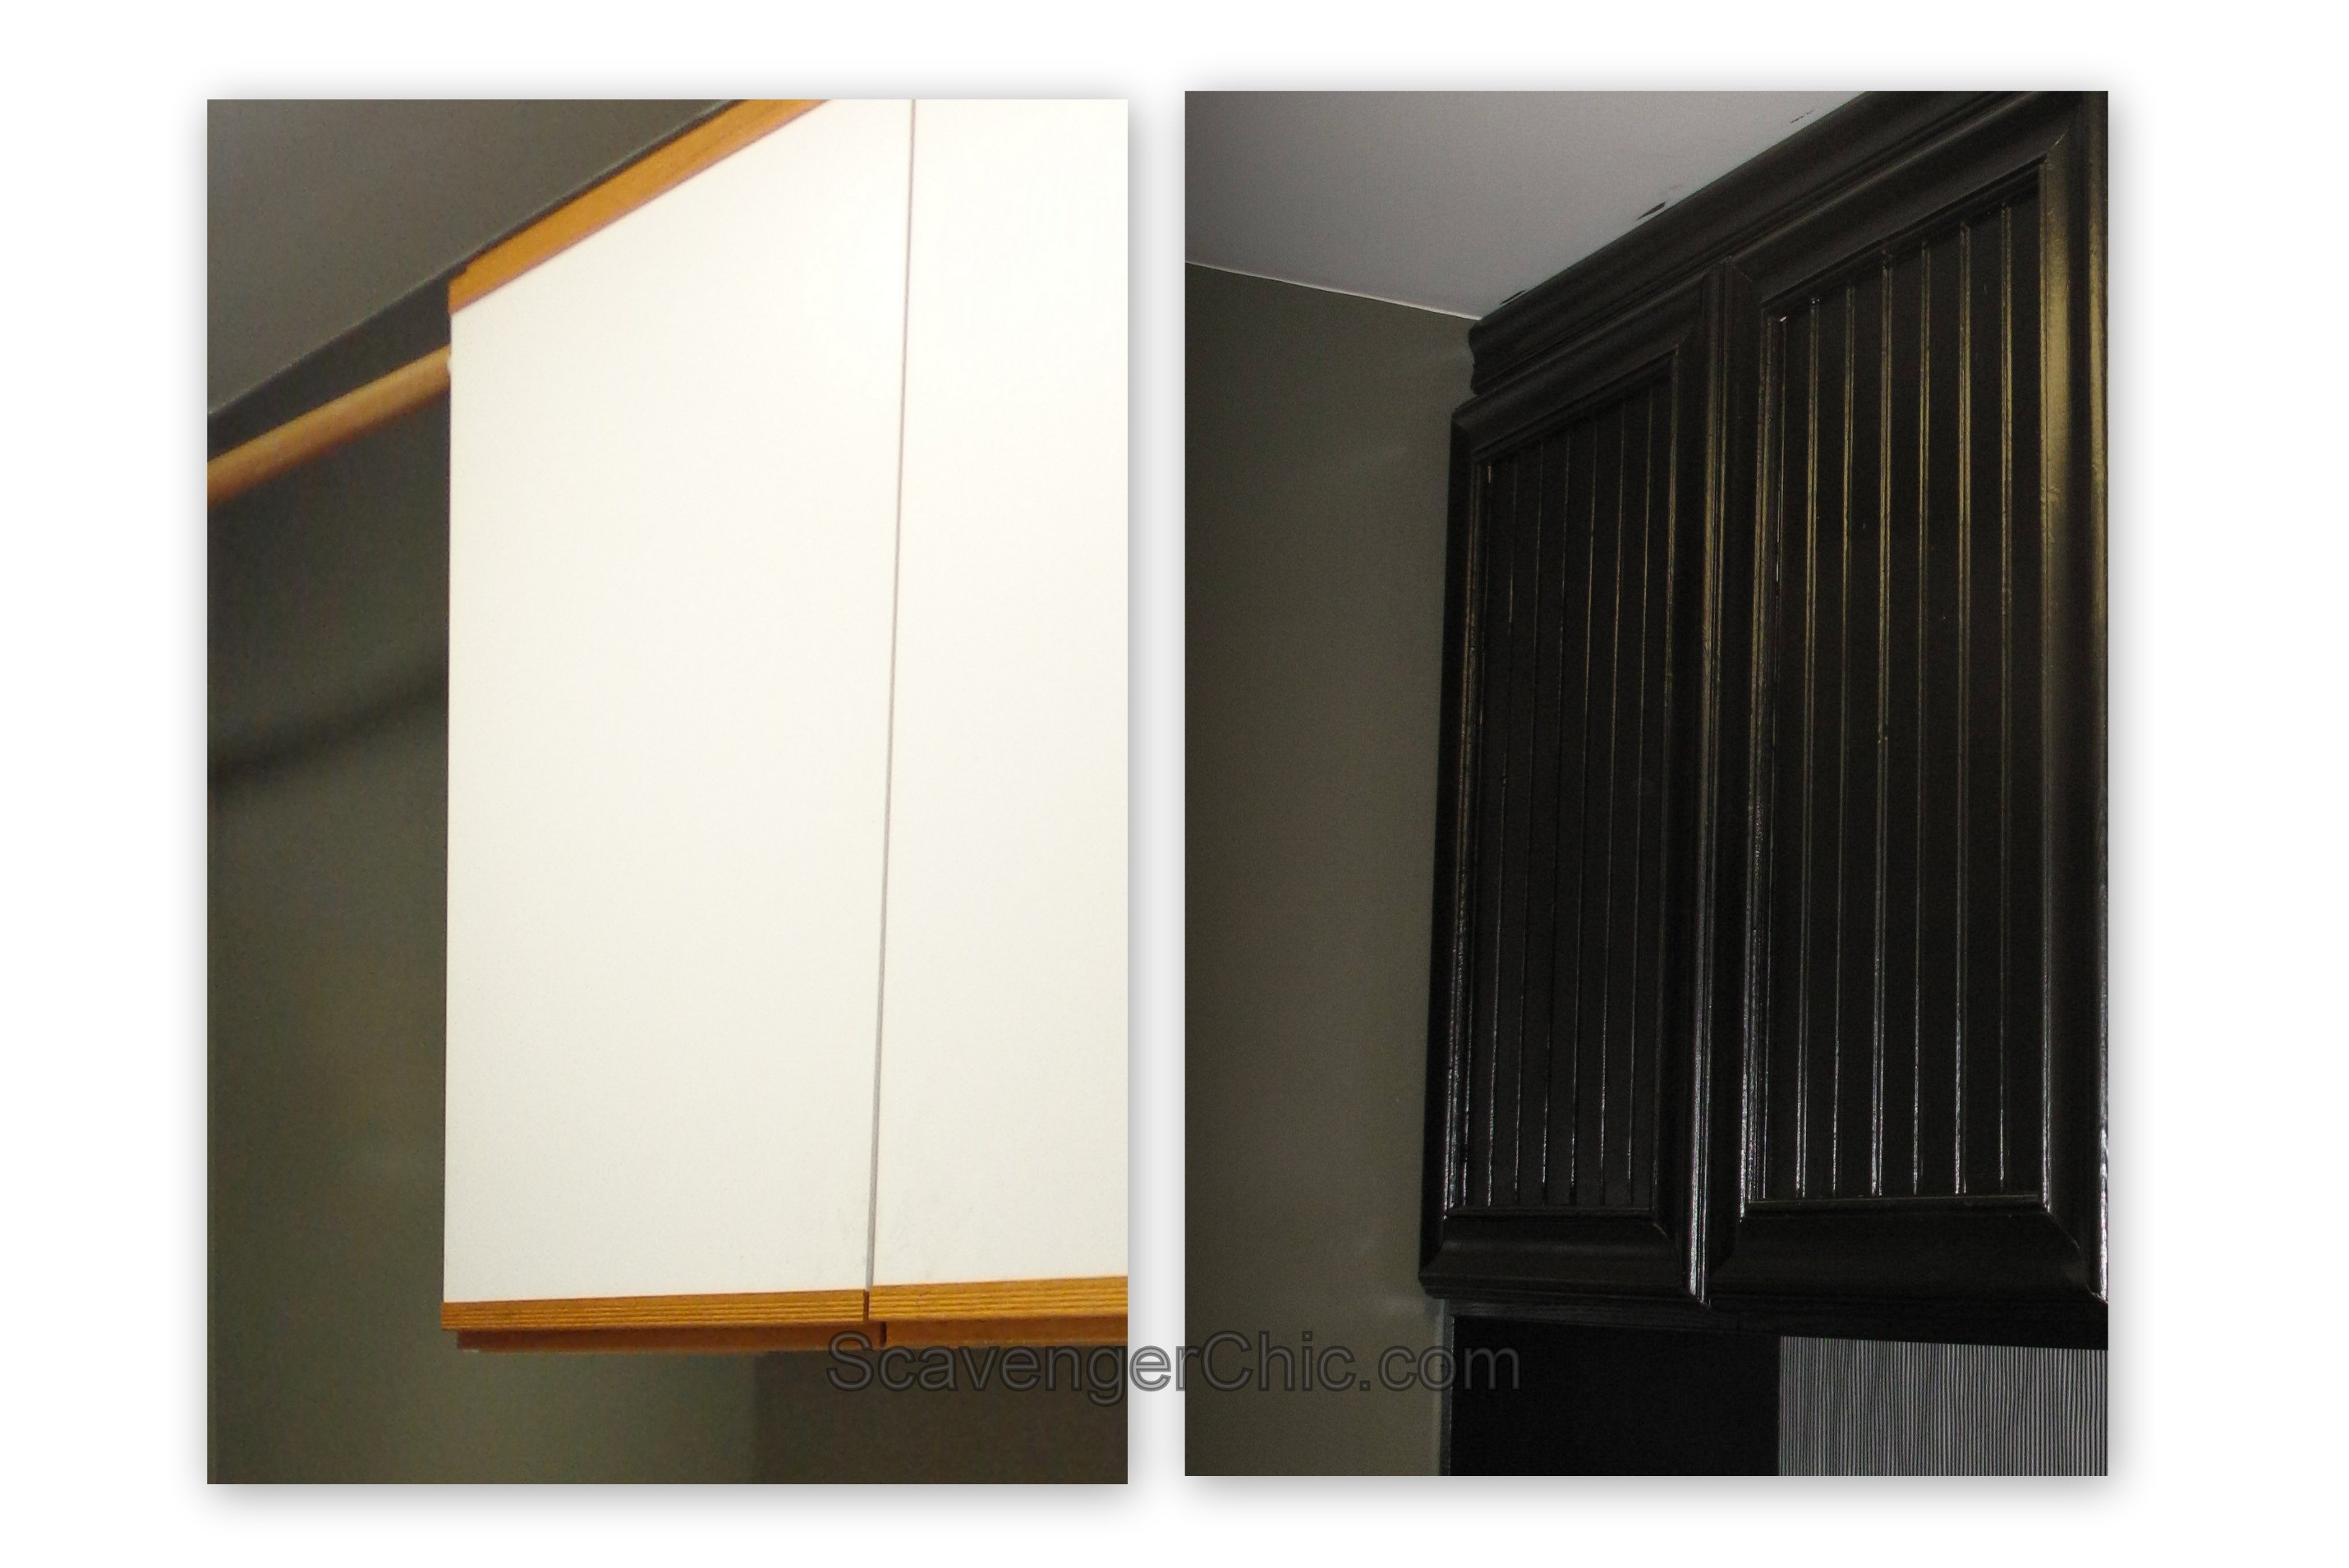 Refacing laminate and oak cabinets diy scavenger chic for Laminate cabinets